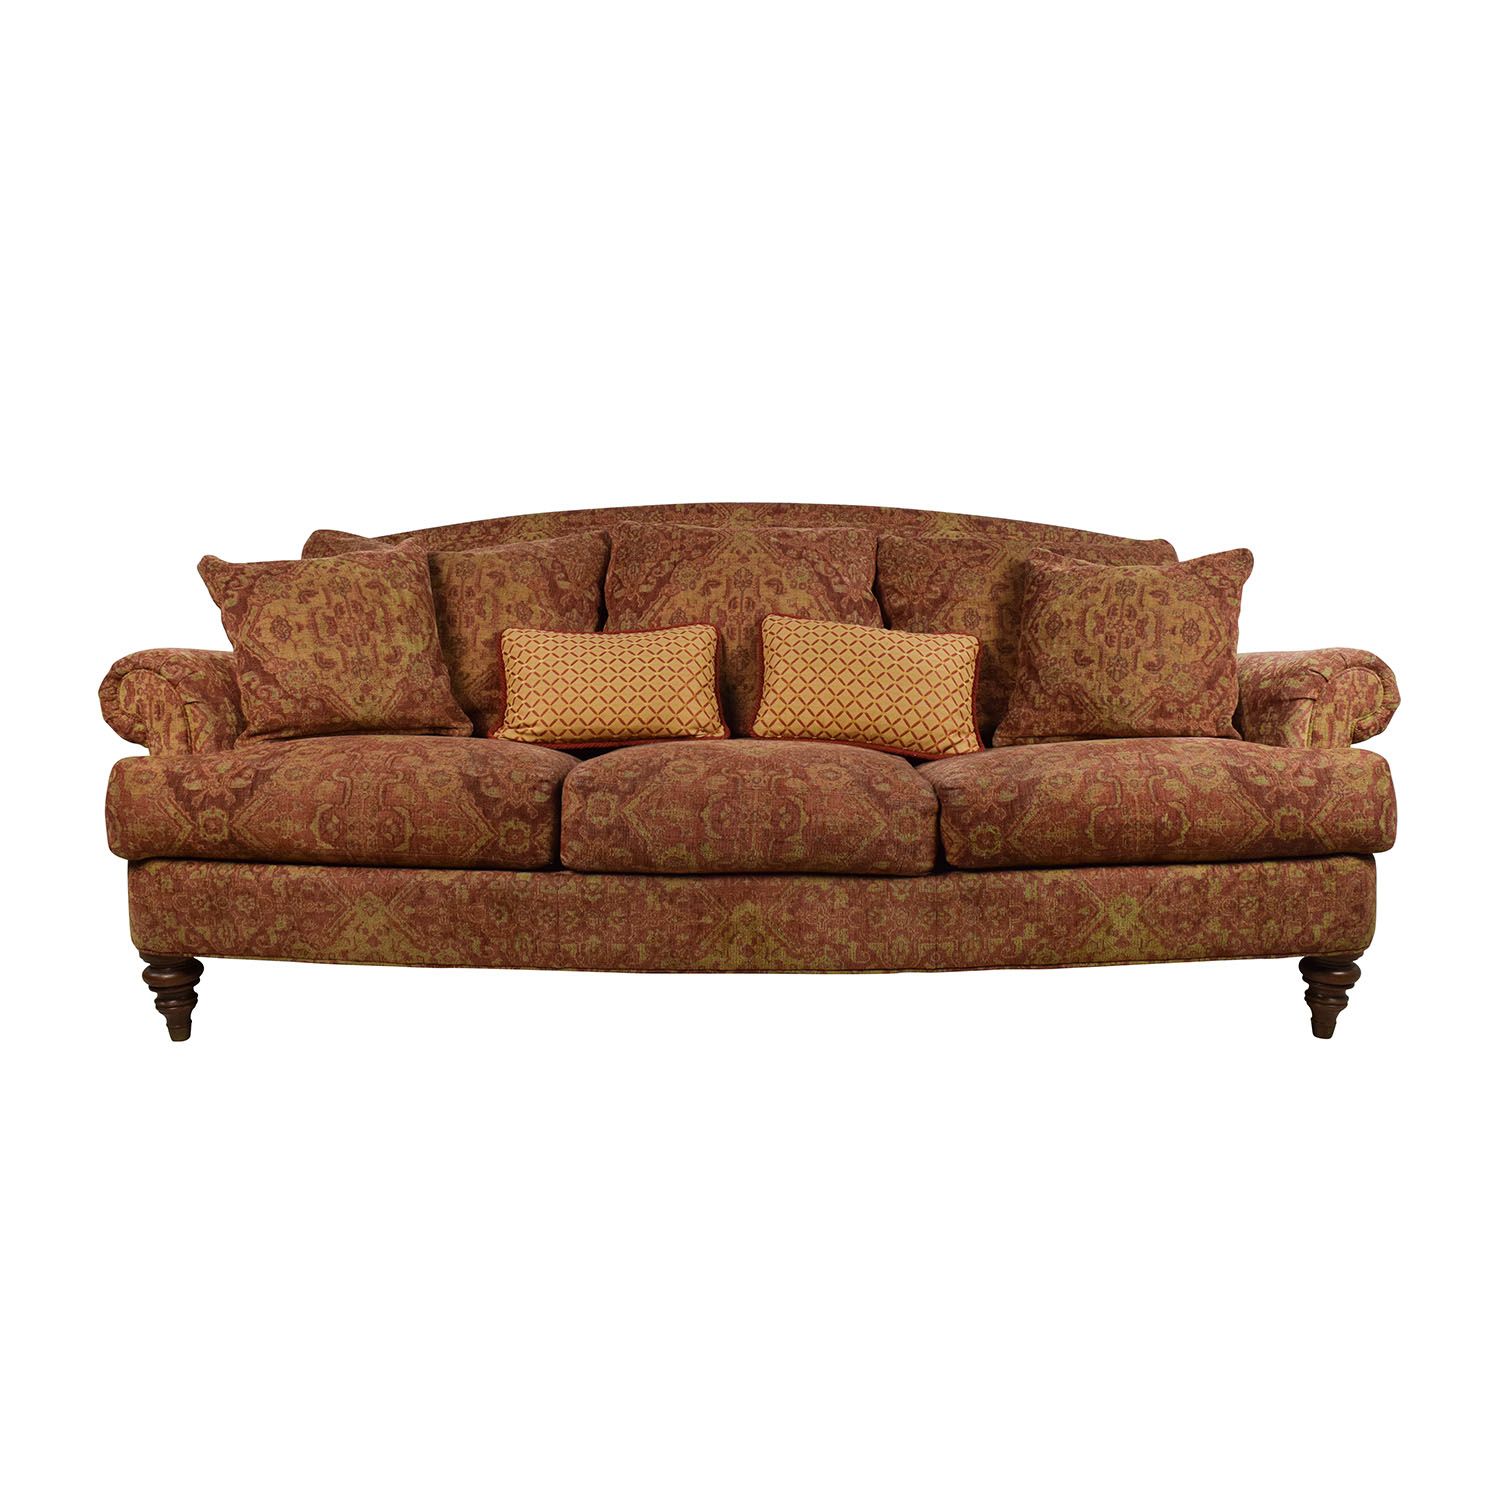 65 off ethan allen ethan allen paisley cushioned sofa for Second hand sofas